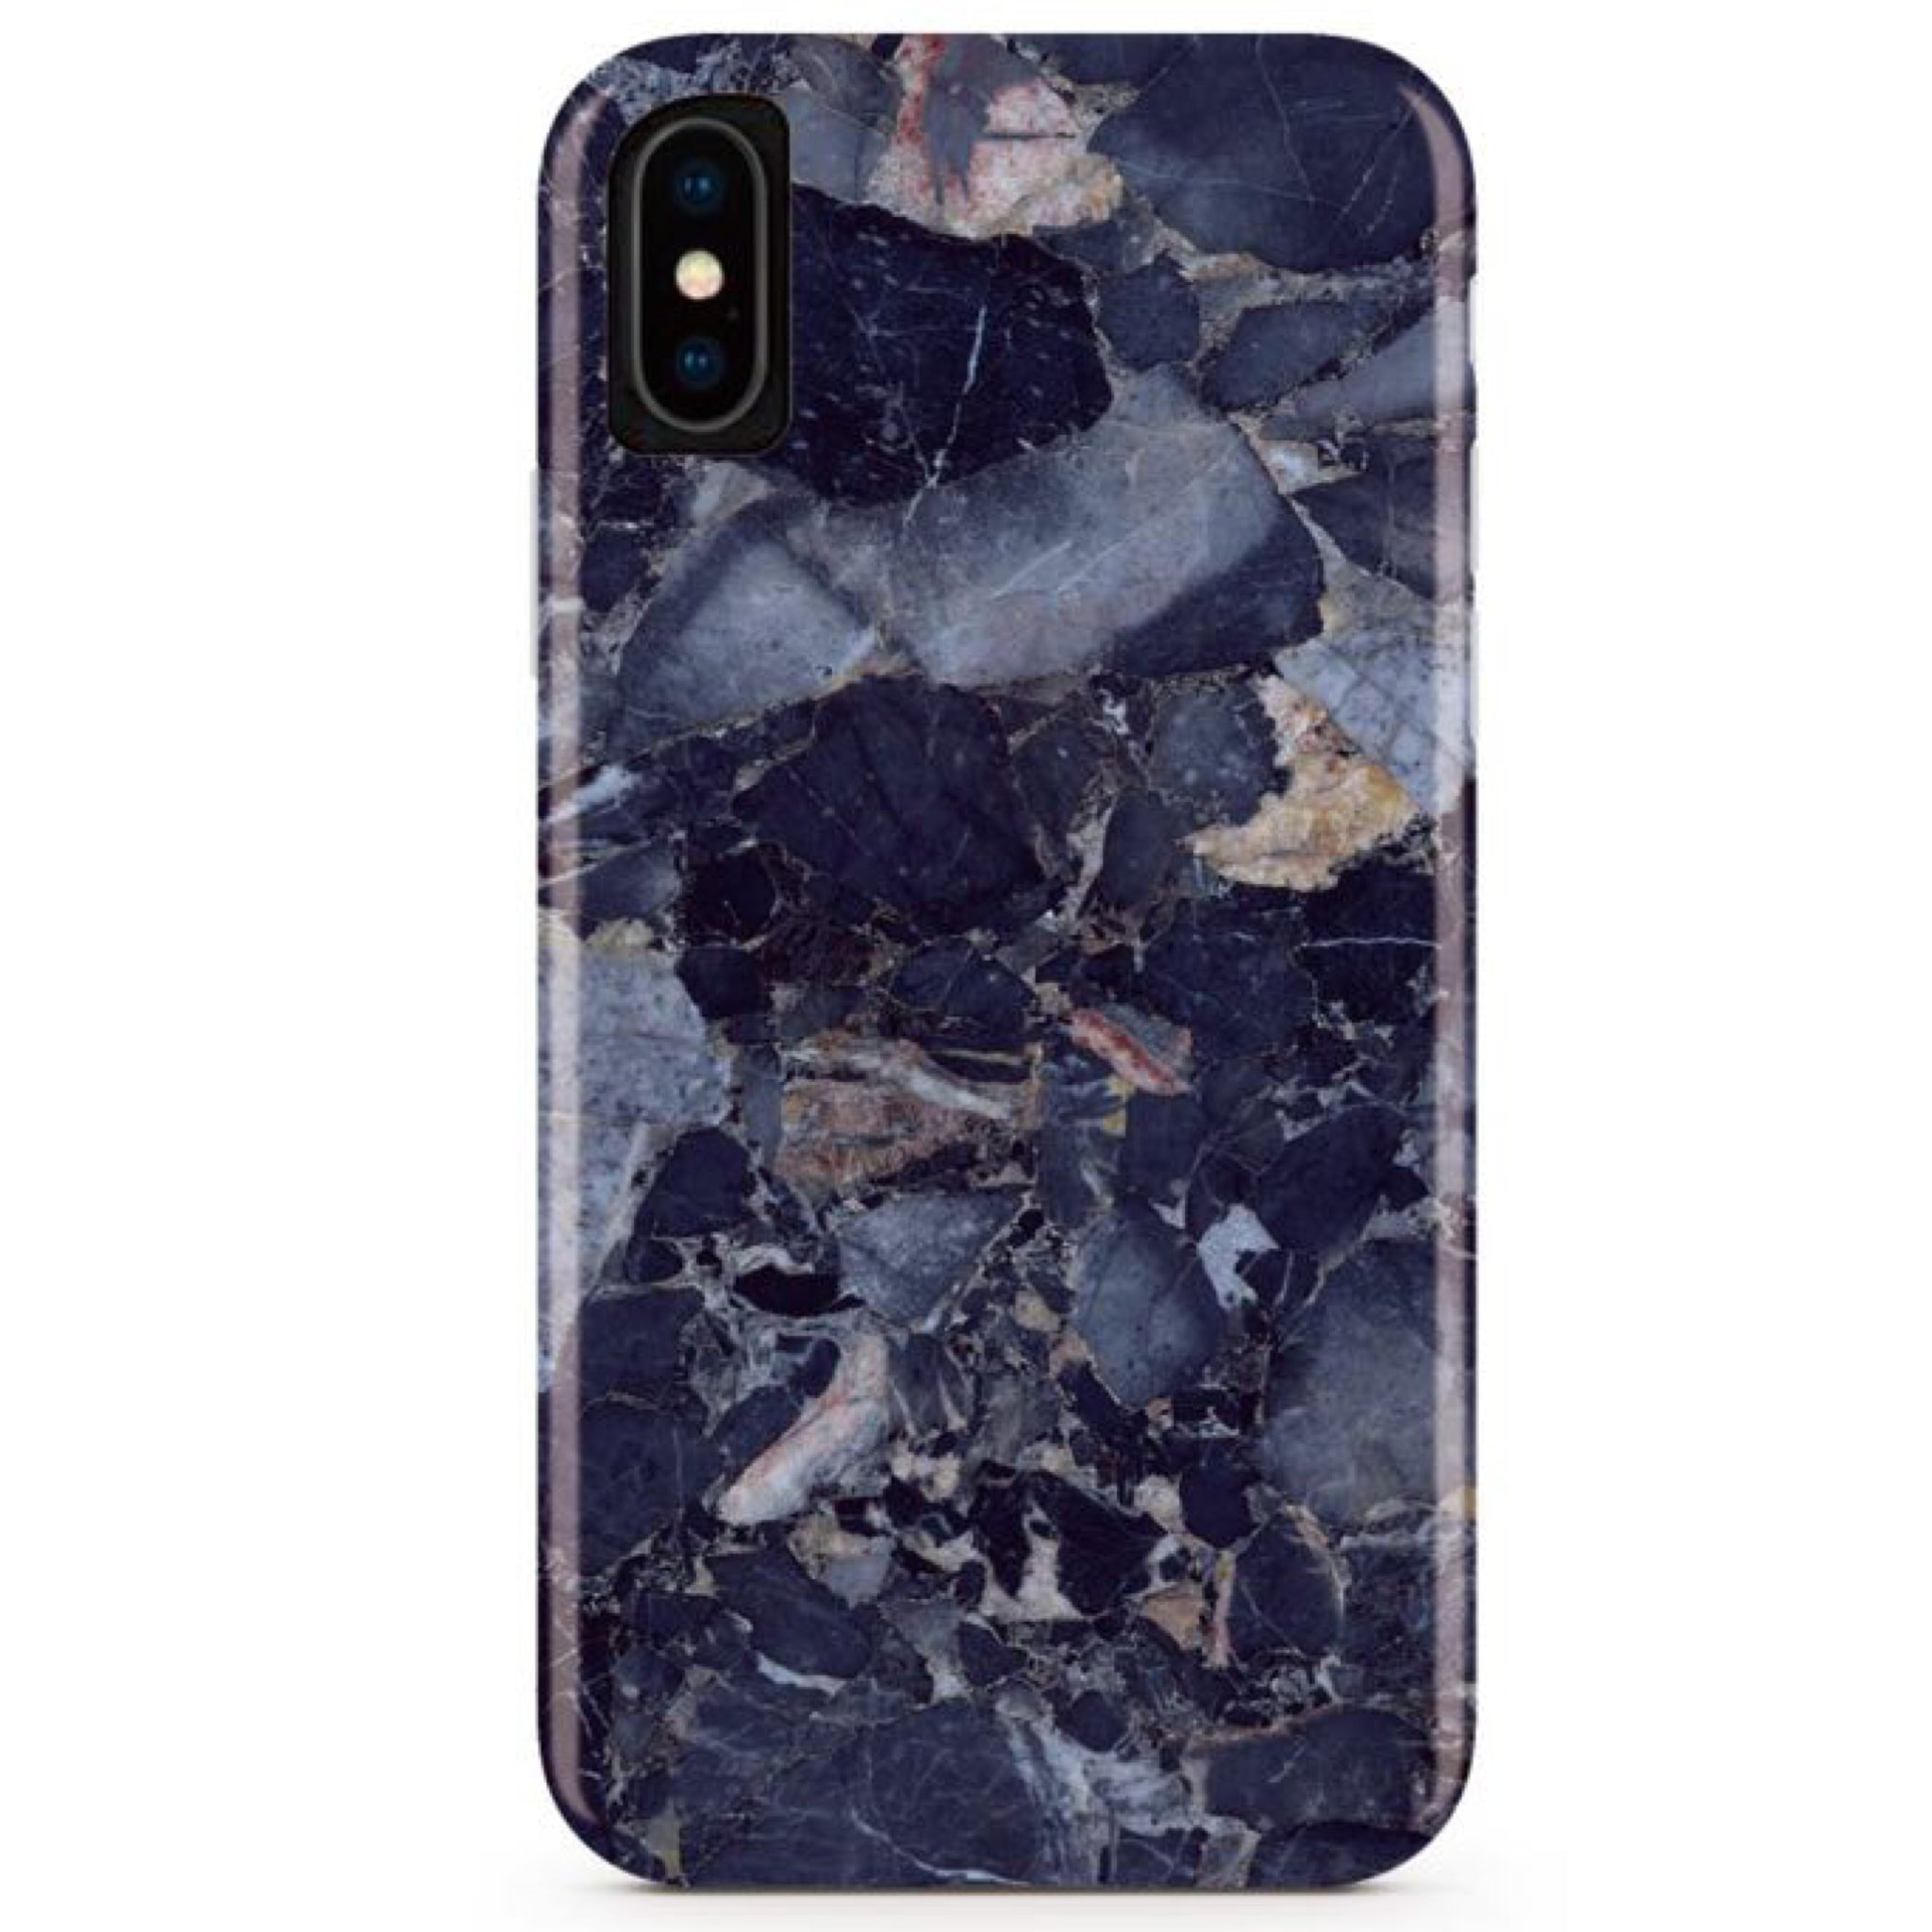 Blue Shattered Marble iPhone Case IPHONE X/XS - CASES A LA MODE